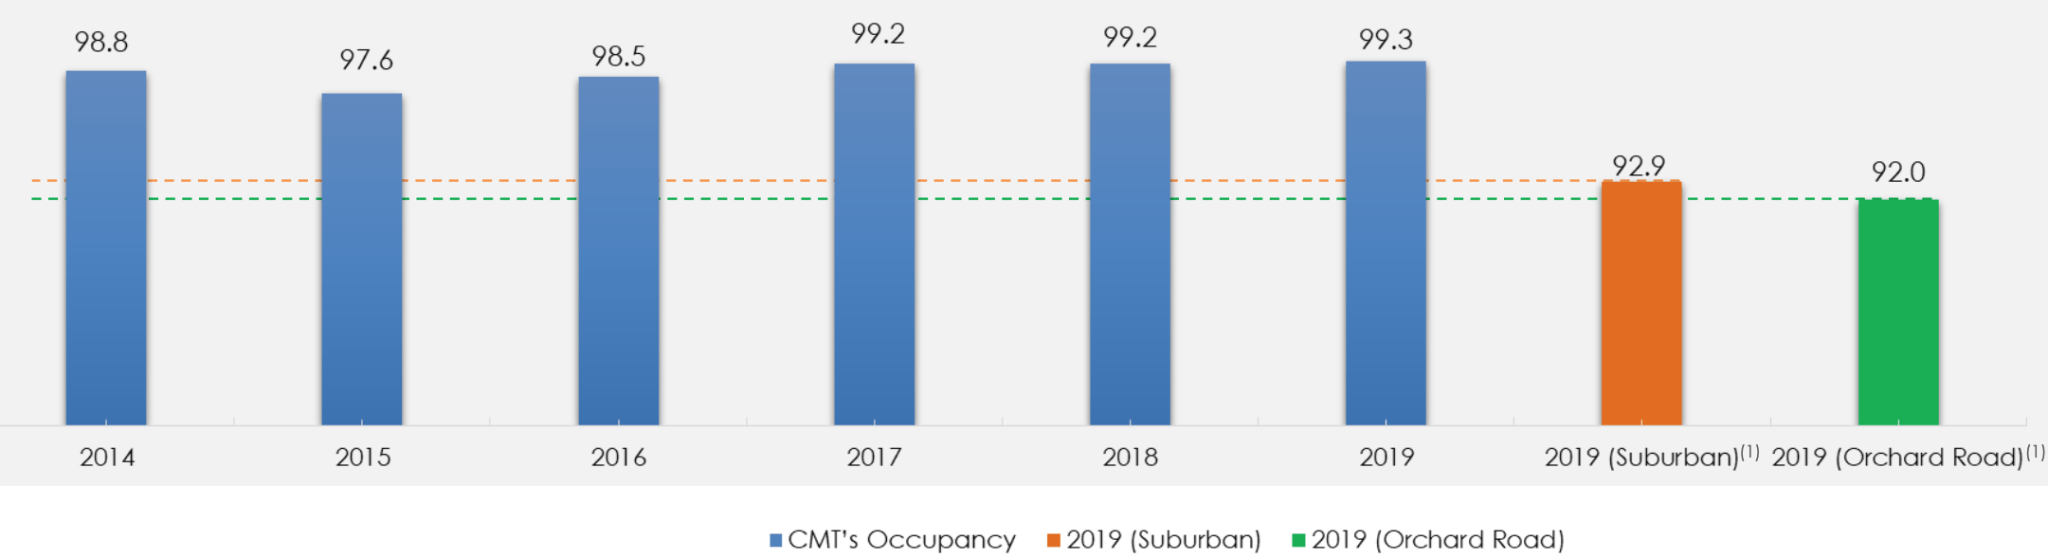 Capitaland mall trust occupancy rates 2020